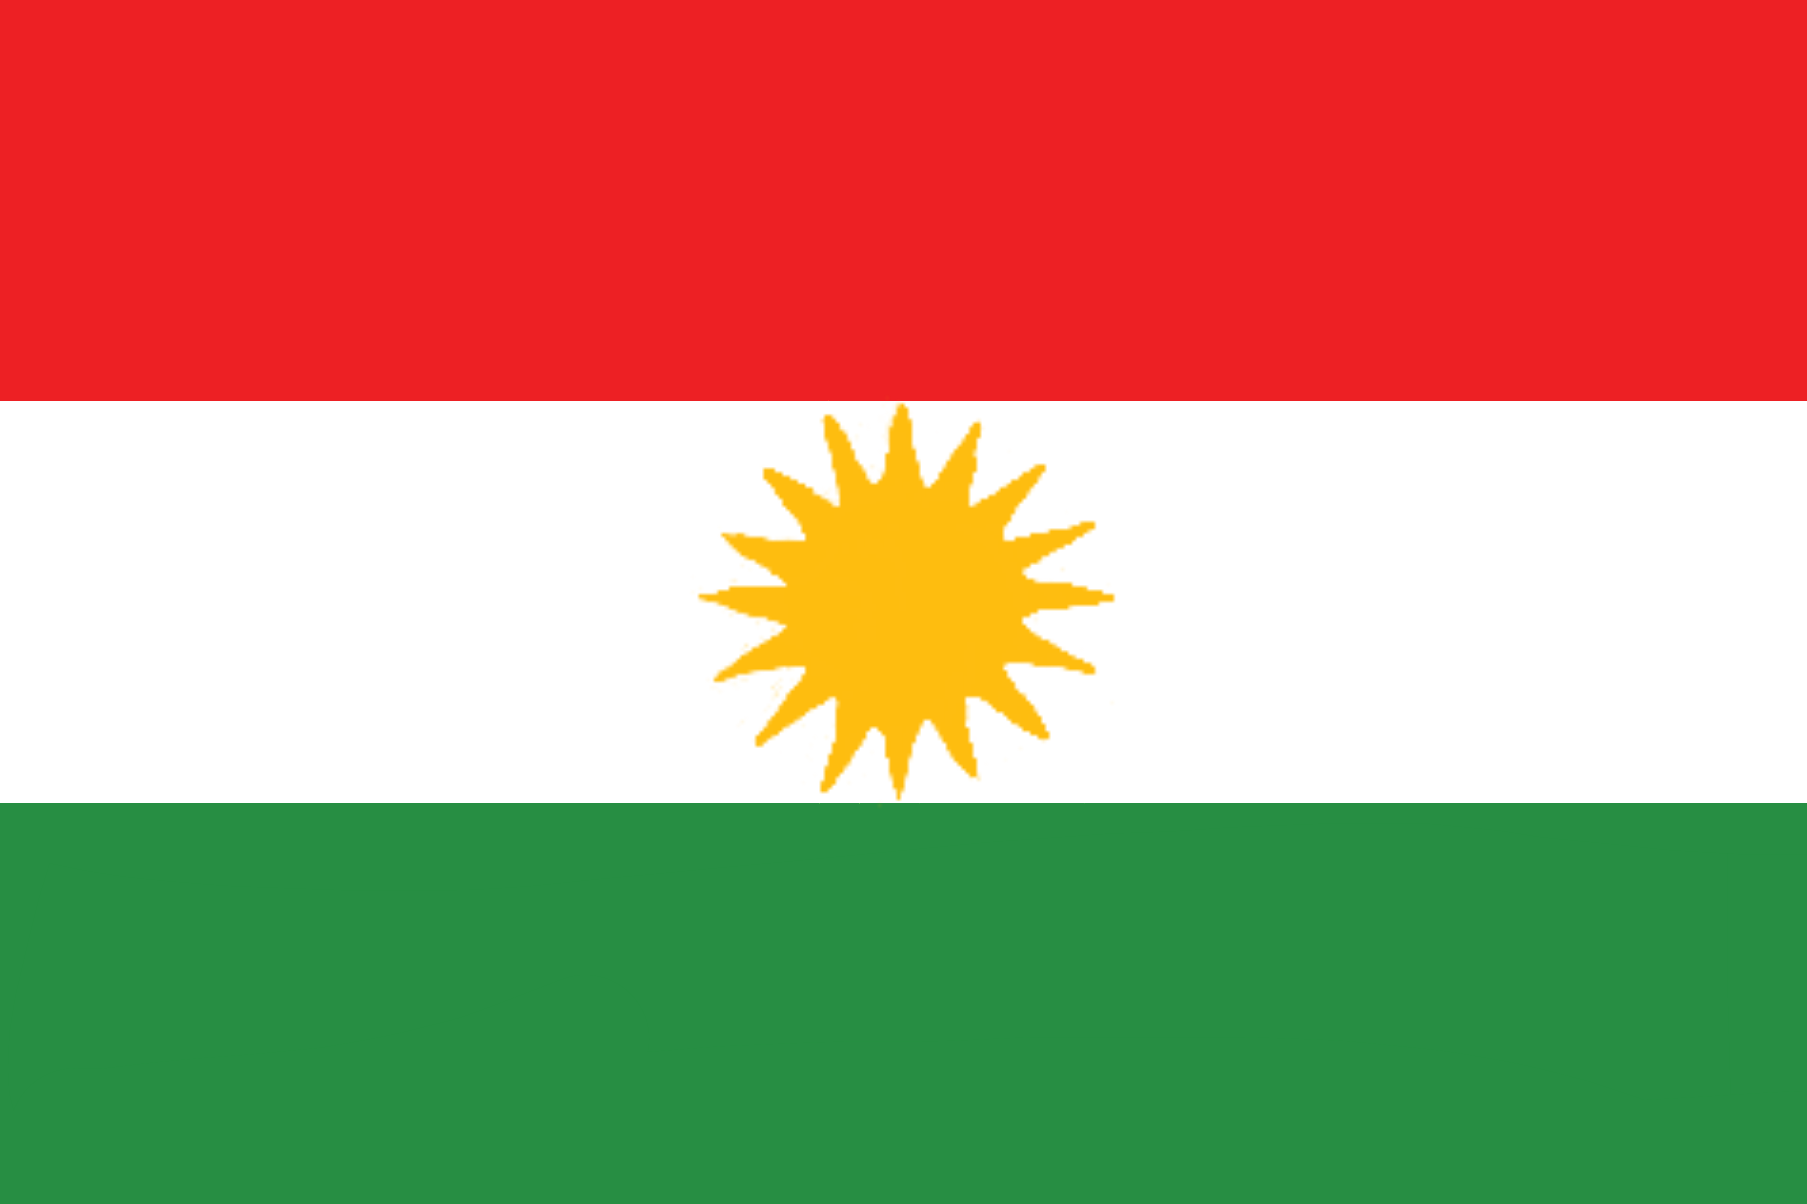 Flag of Kurdistan region (Northern Iraq)